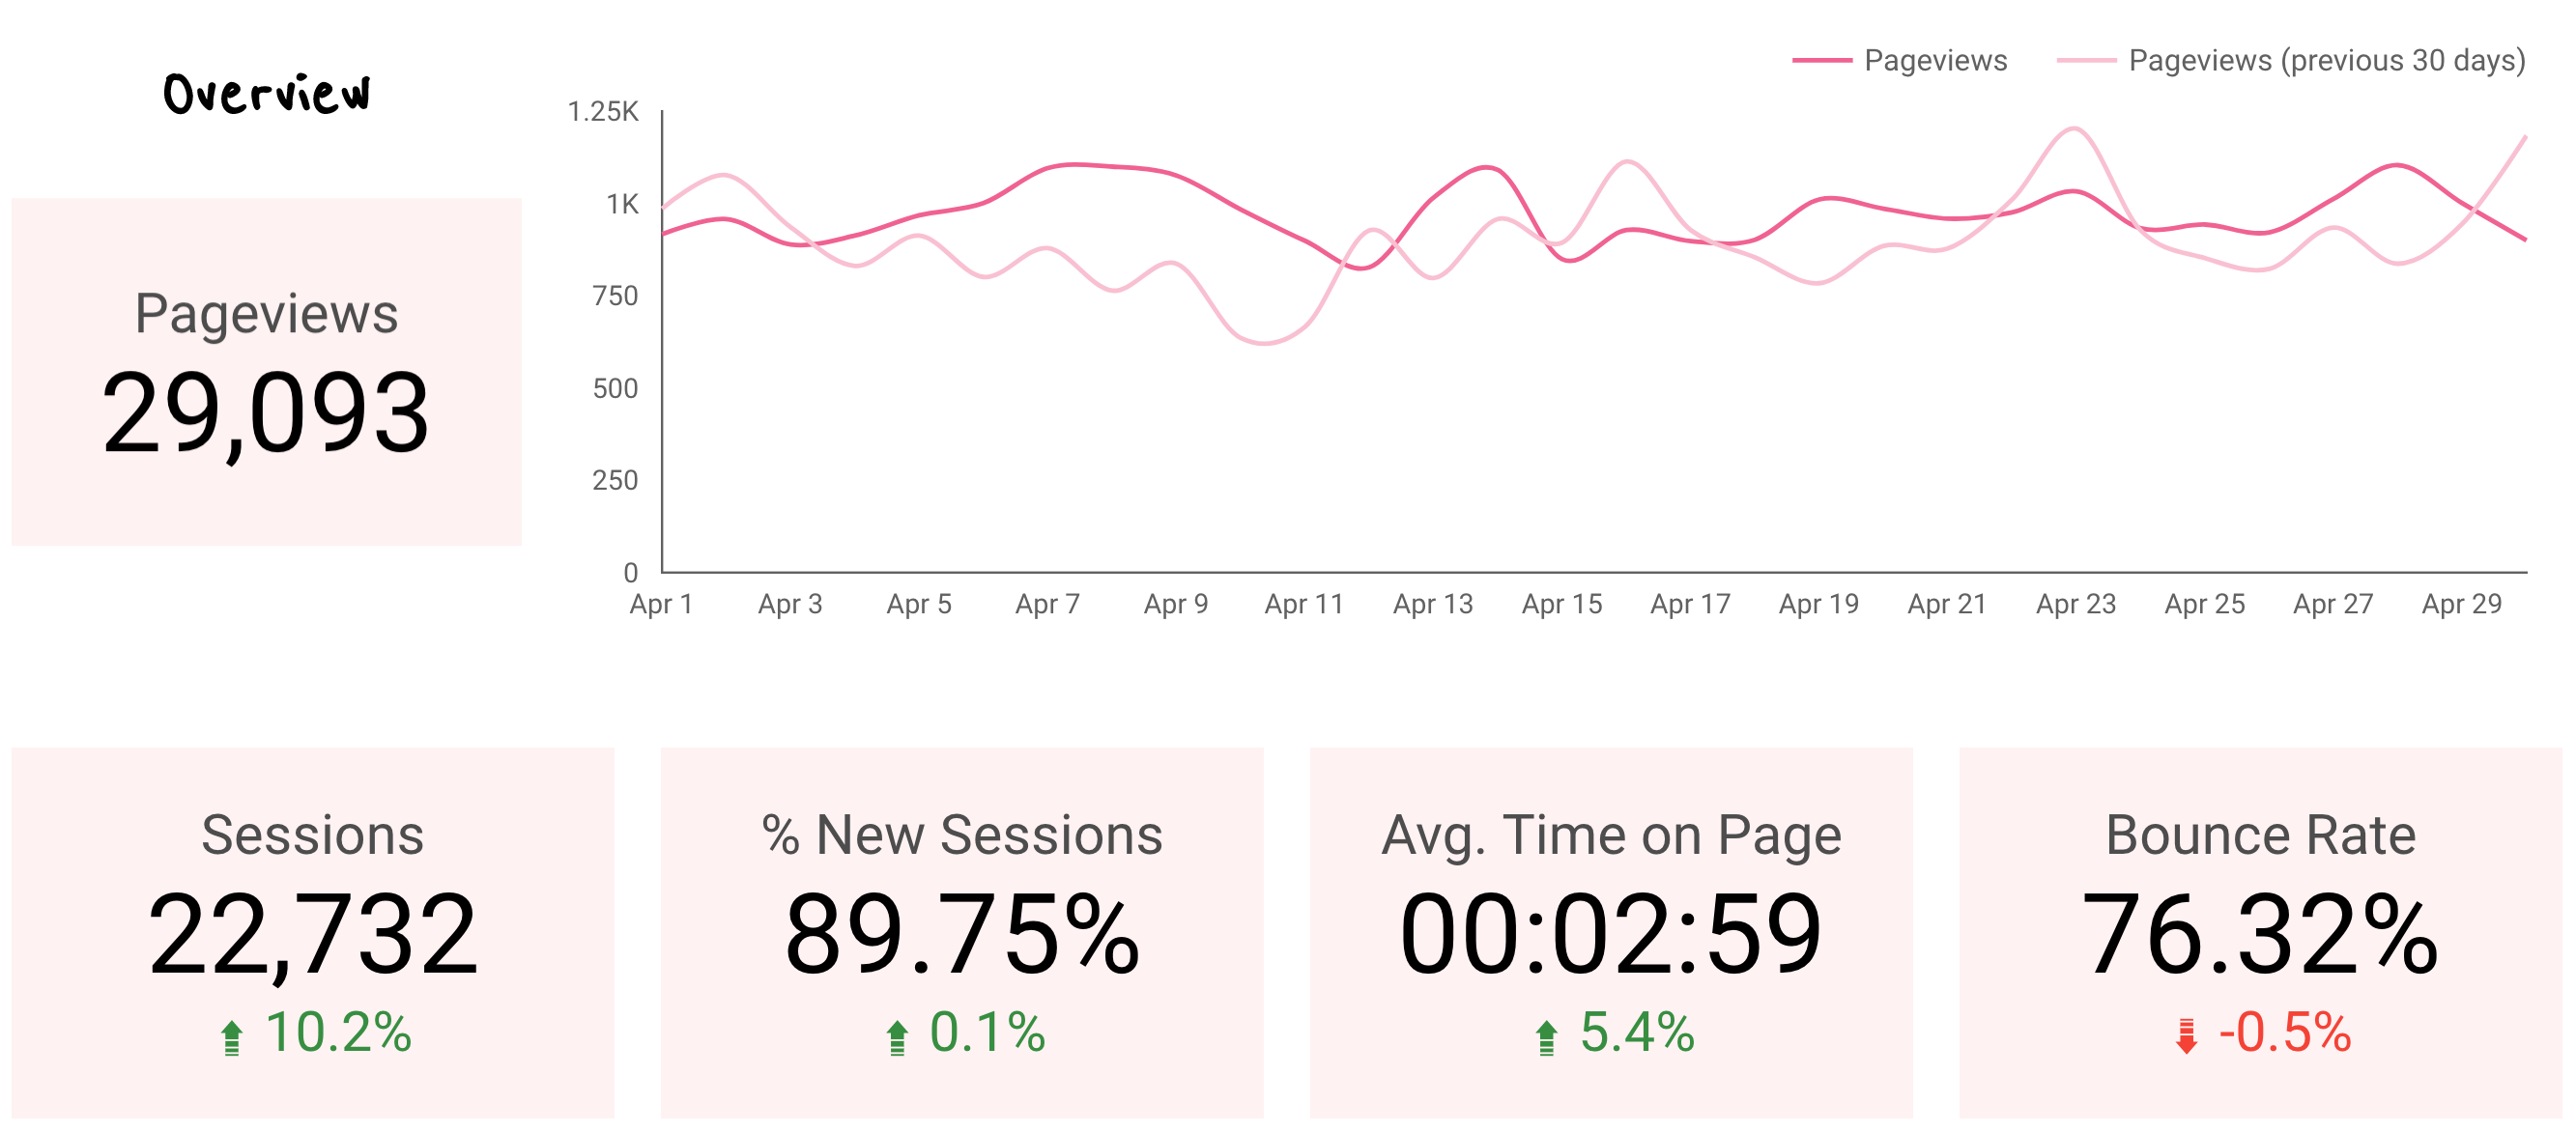 April 2019 Blog Pageviews